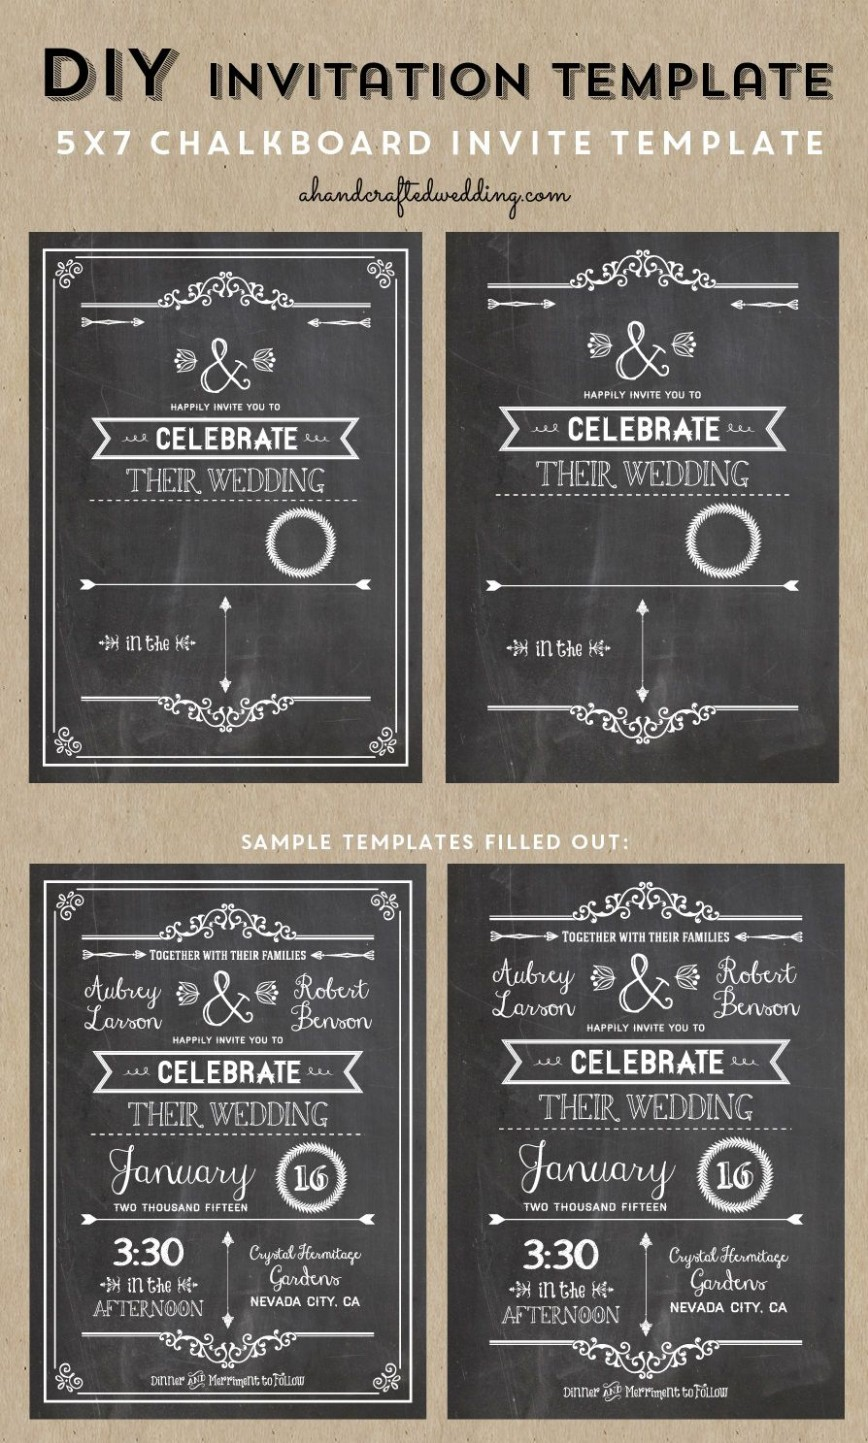 005 Wondrou Chalkboard Invitation Template Free Picture  Download Wedding868